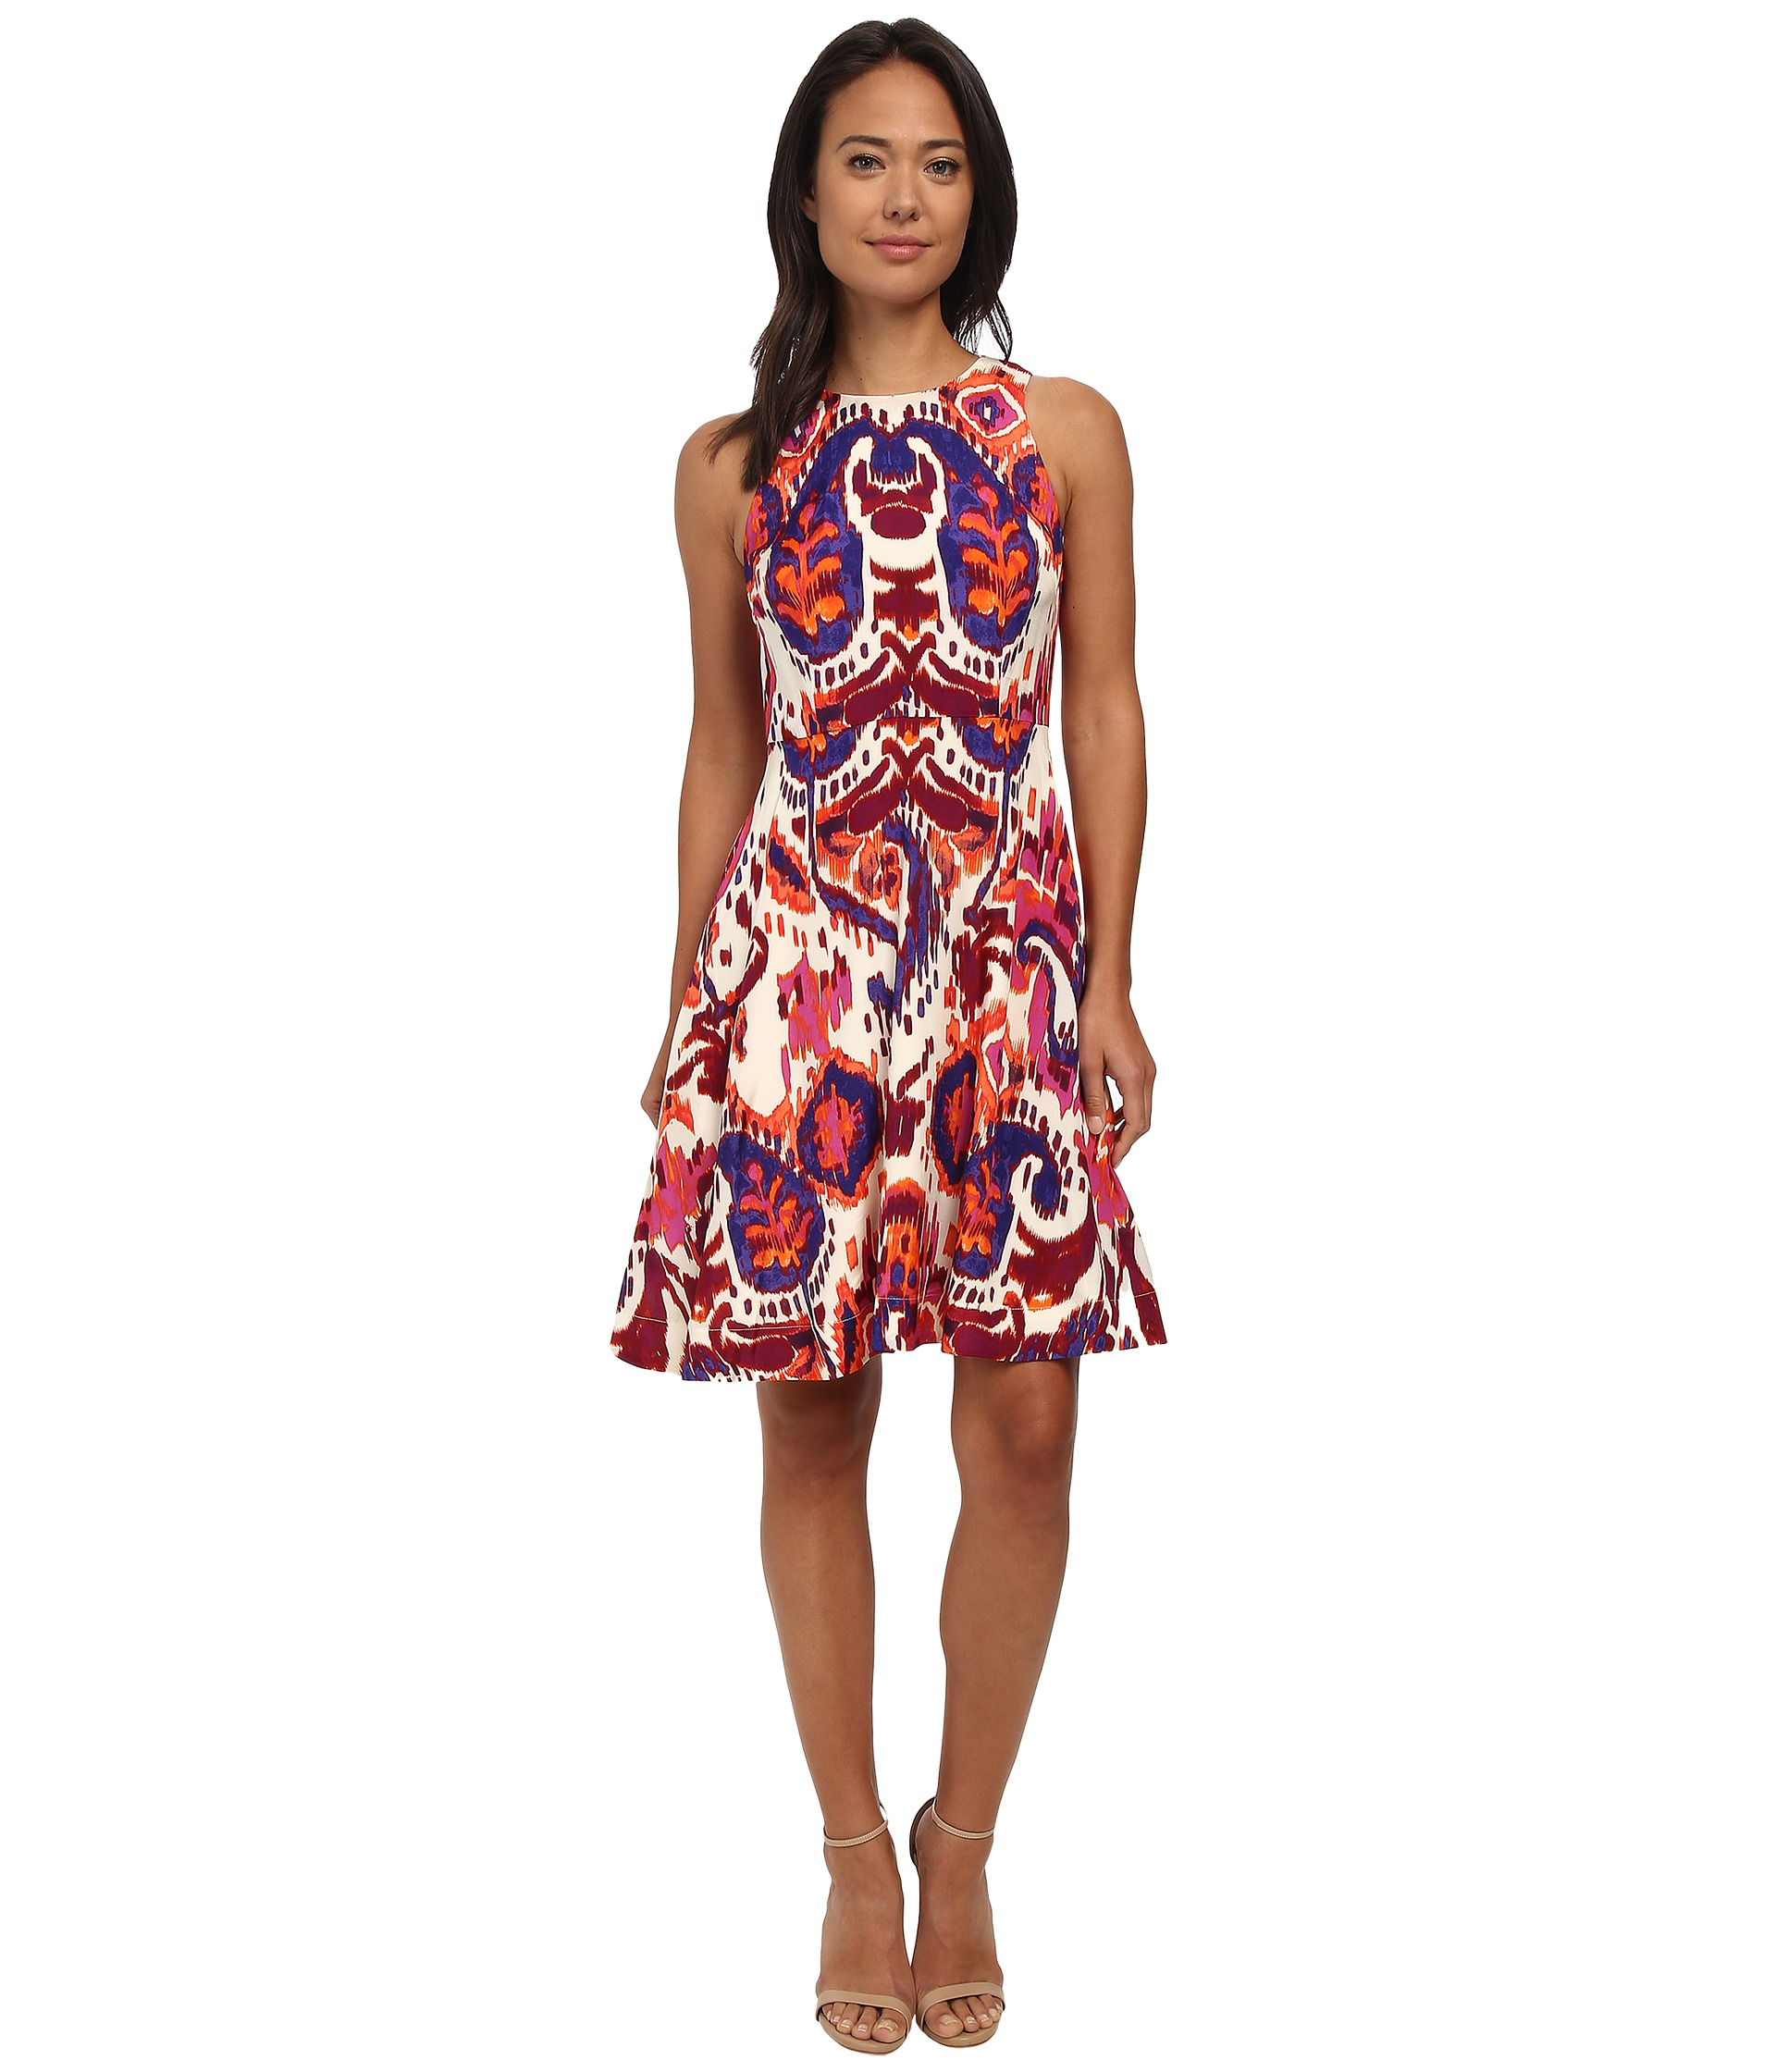 Lyst - Donna morgan Rayon Fit And Flare Dress